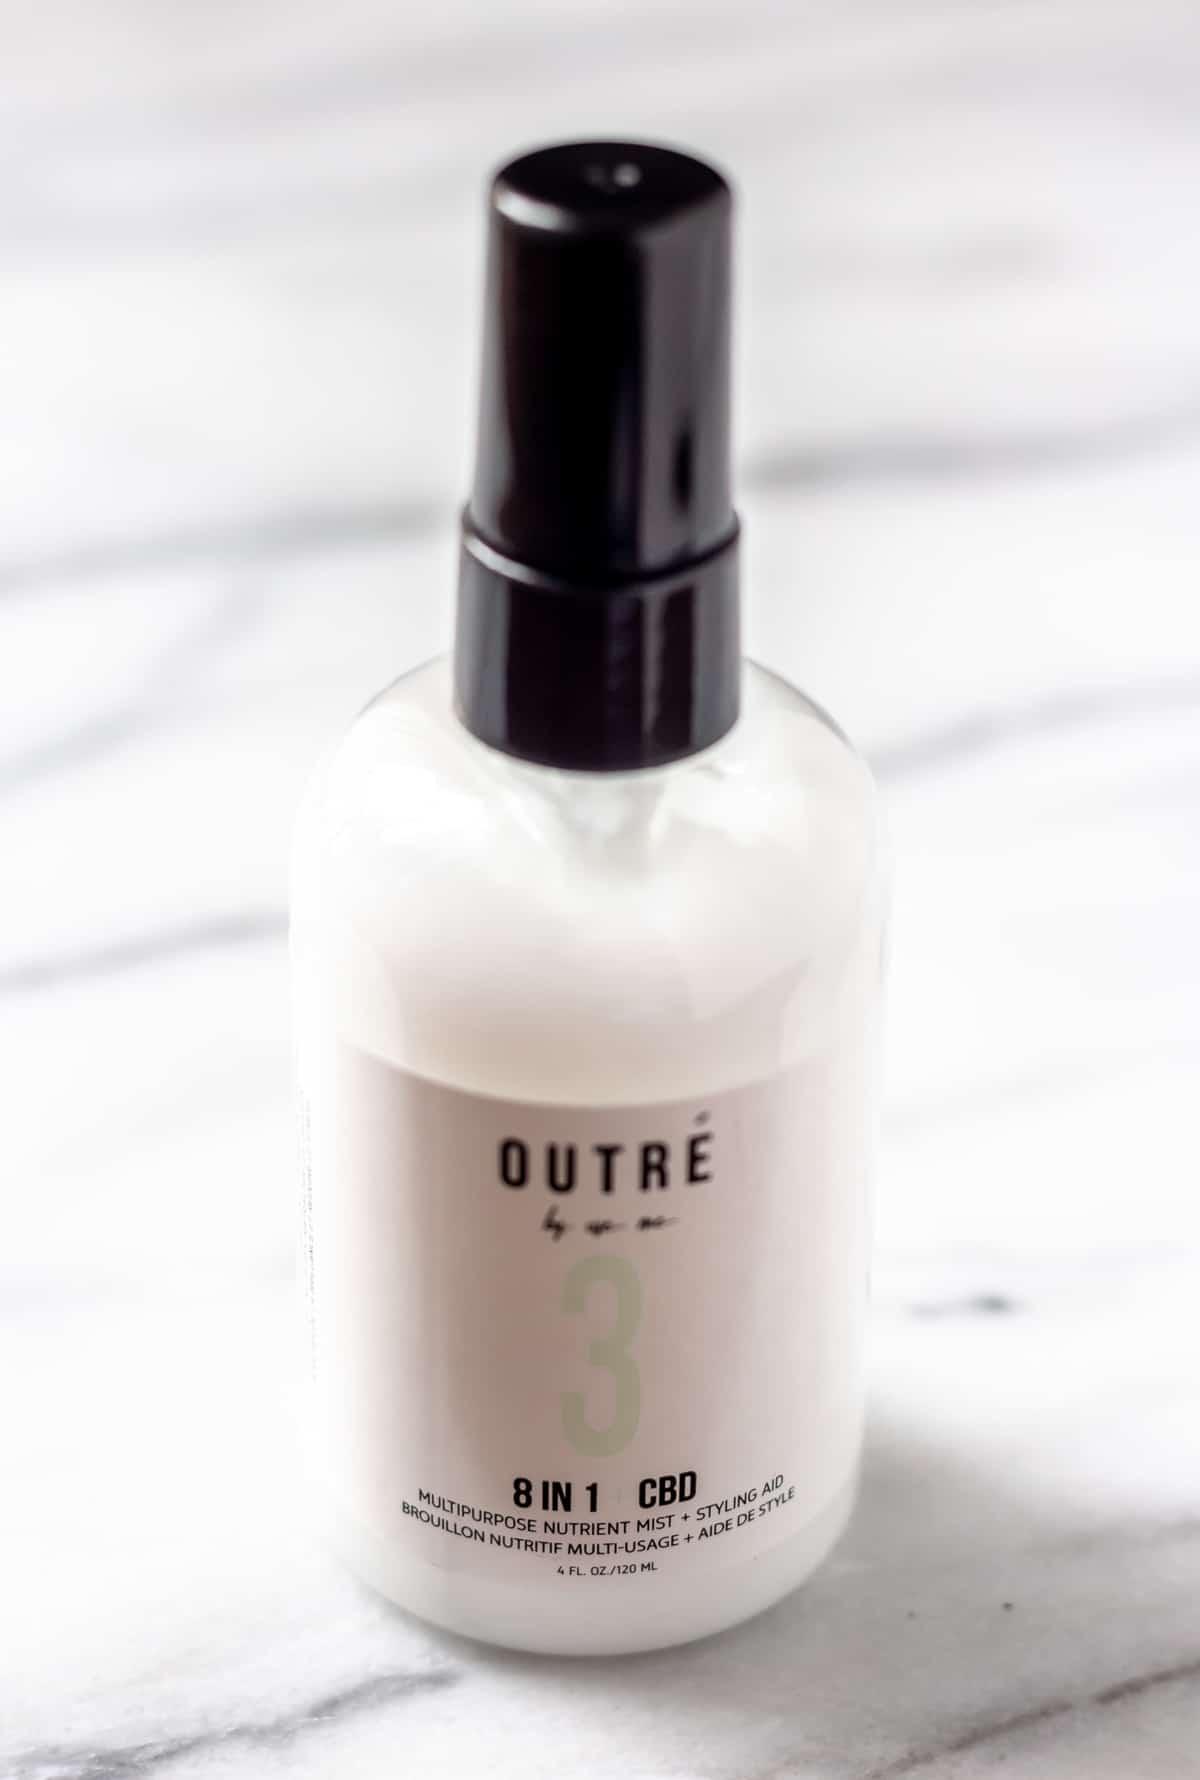 Outre 8 in 1 CBD Leave In Conditioner bottle on a marble background